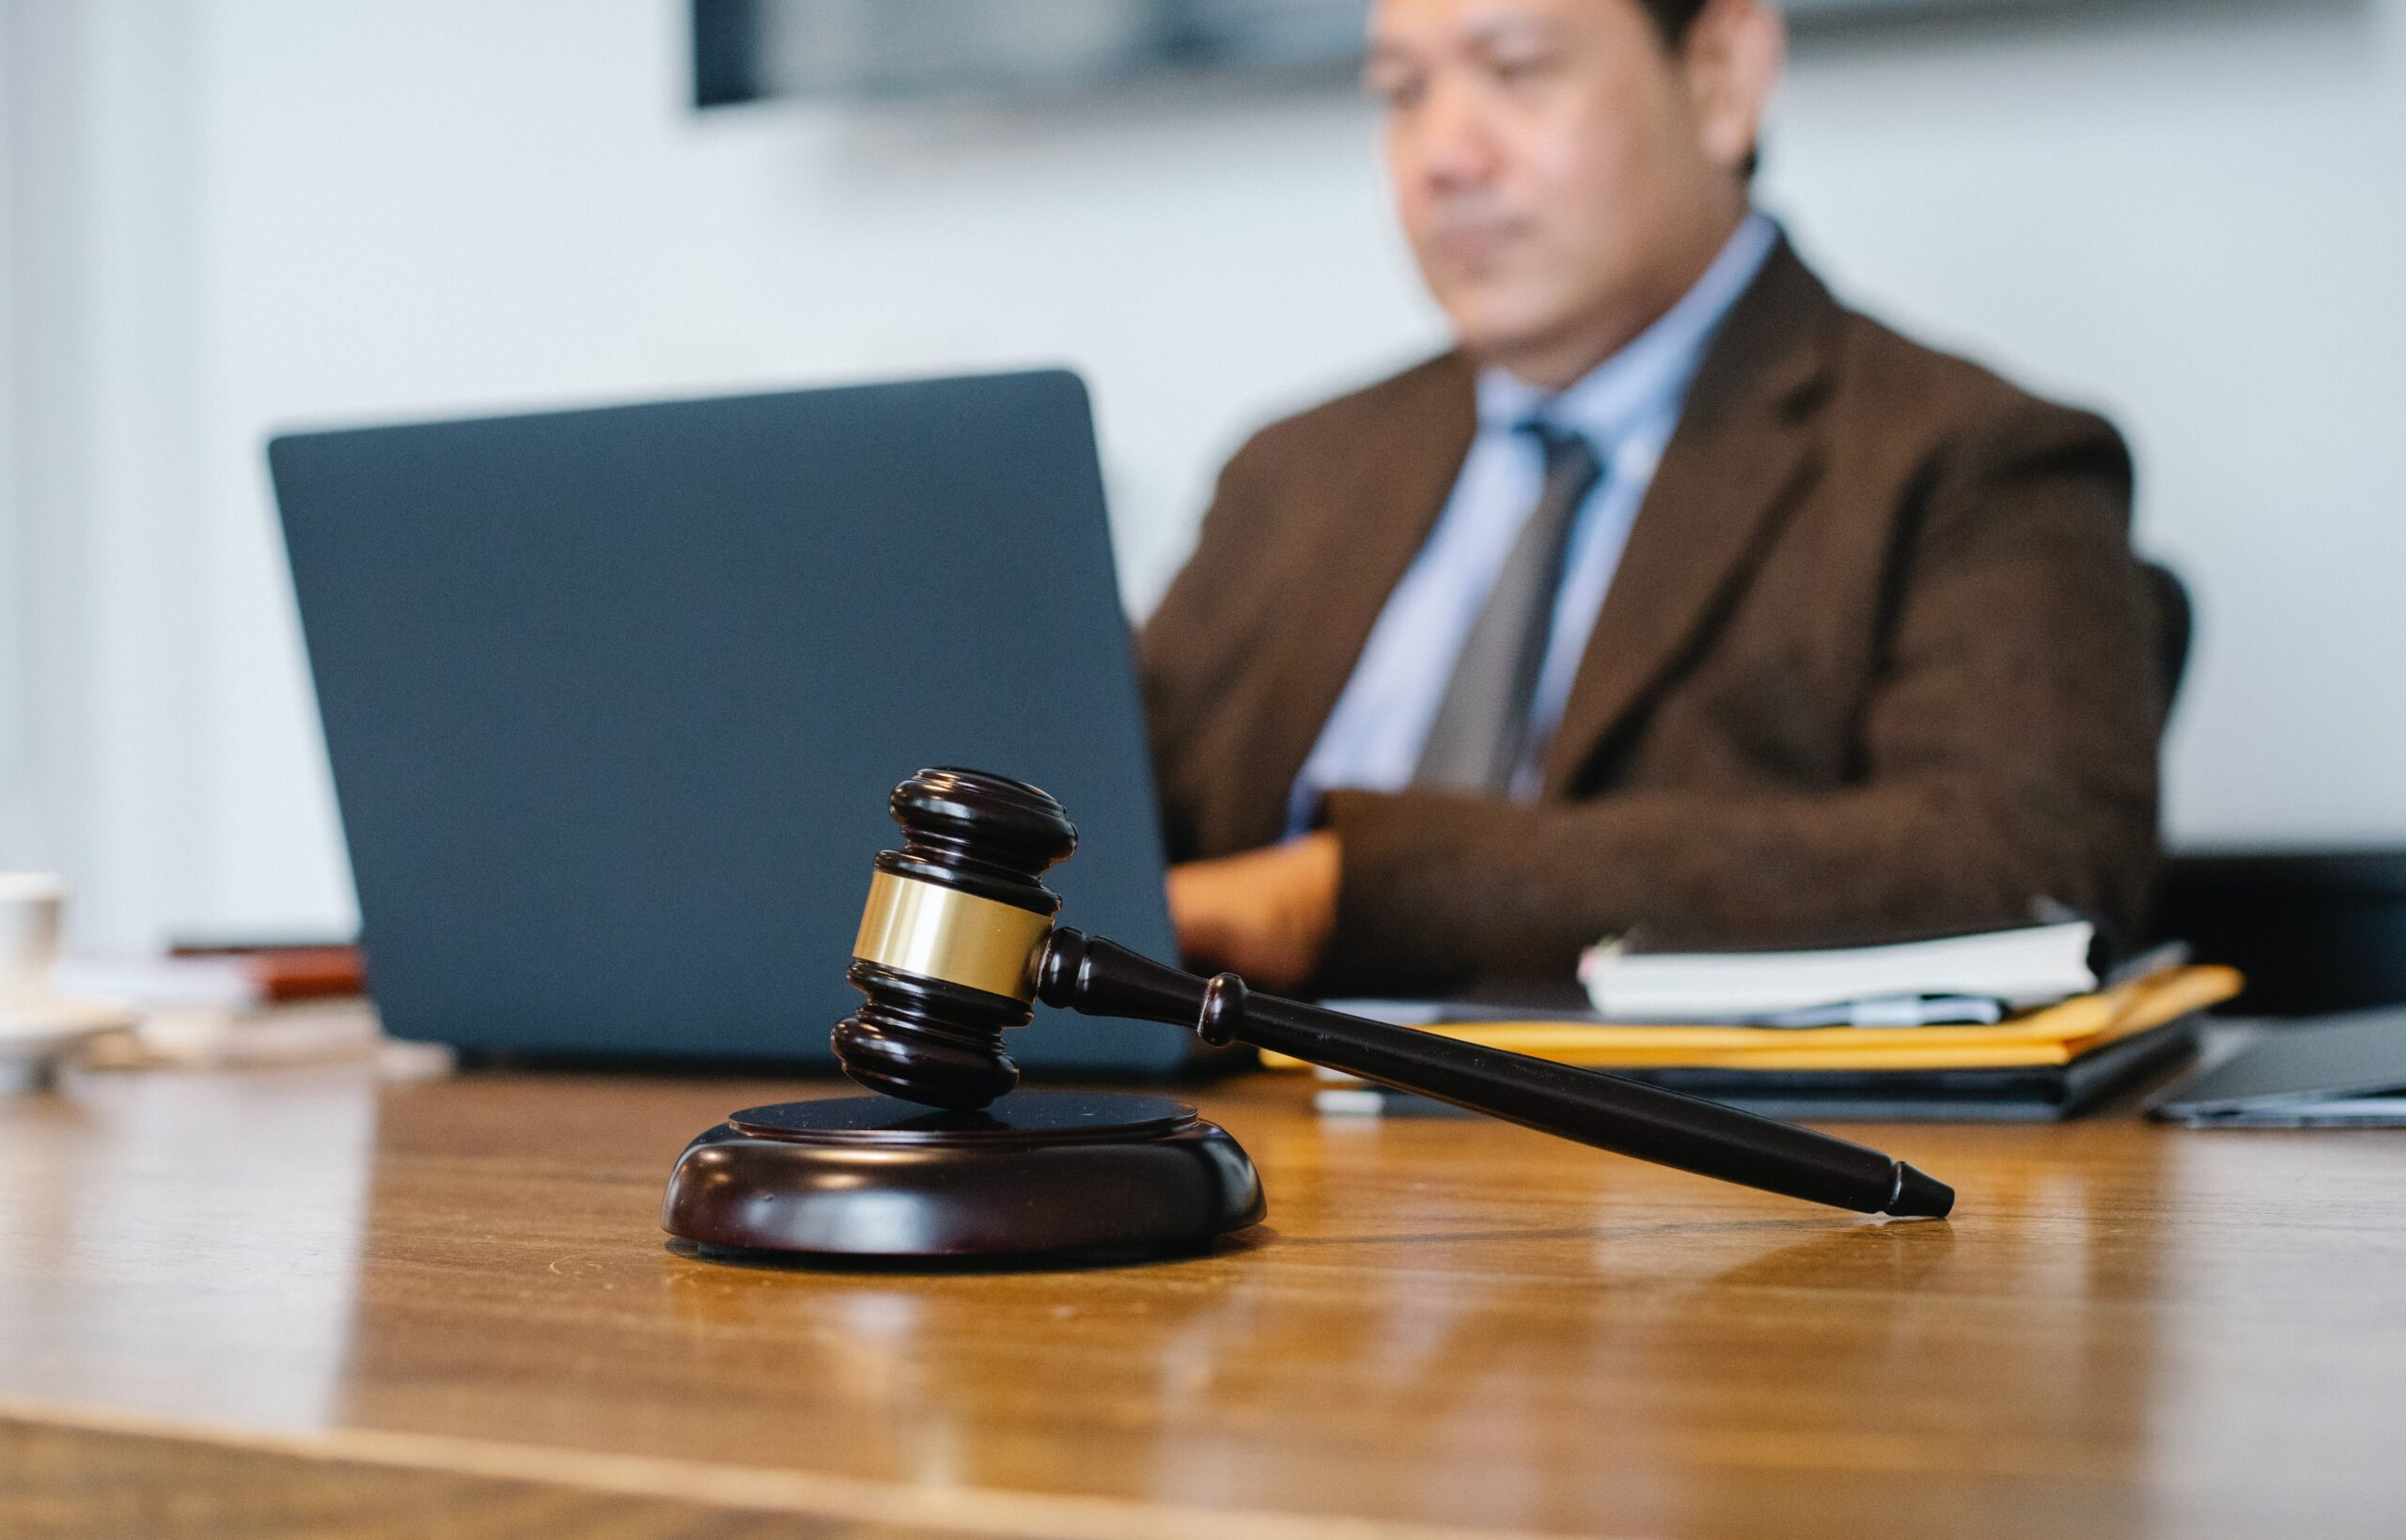 A gavel sits on a desk and an individual working on a computer is blurred in the background.